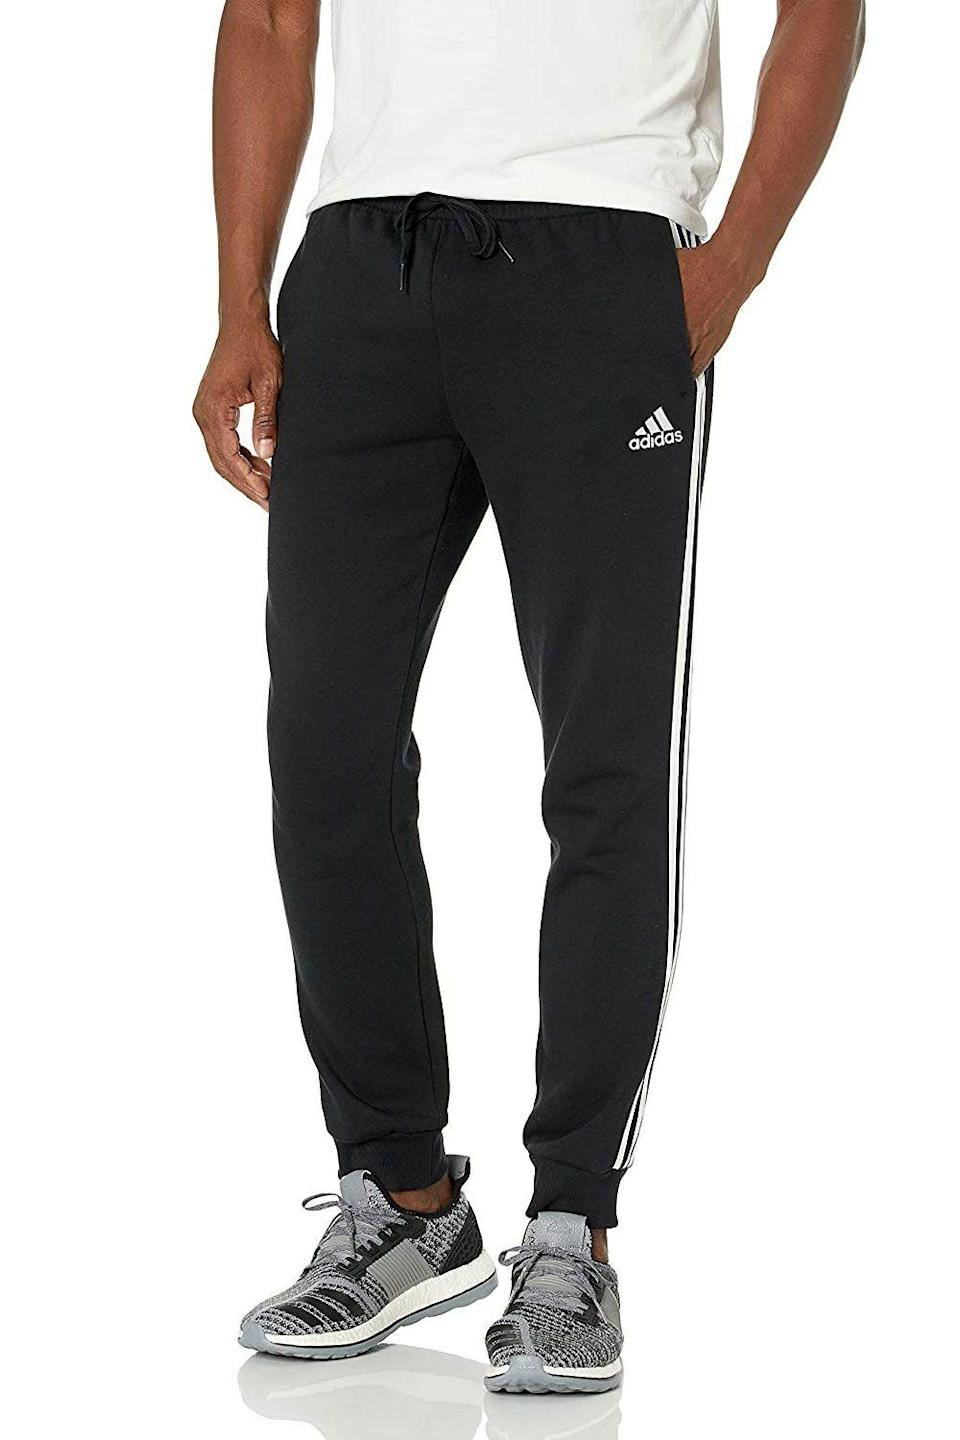 """<p><strong>Adidas</strong></p><p>amazon.com</p><p><strong>$45.00</strong></p><p><a href=""""https://www.amazon.com/dp/B08MKT79VL?tag=syn-yahoo-20&ascsubtag=%5Bartid%7C10054.g.37623756%5Bsrc%7Cyahoo-us"""" rel=""""nofollow noopener"""" target=""""_blank"""" data-ylk=""""slk:Shop Now"""" class=""""link rapid-noclick-resp"""">Shop Now</a></p><p>The Three Stripes never fails to offers high-performance styles that are comfortable, durable, and look damn good. These pants are proof. </p>"""